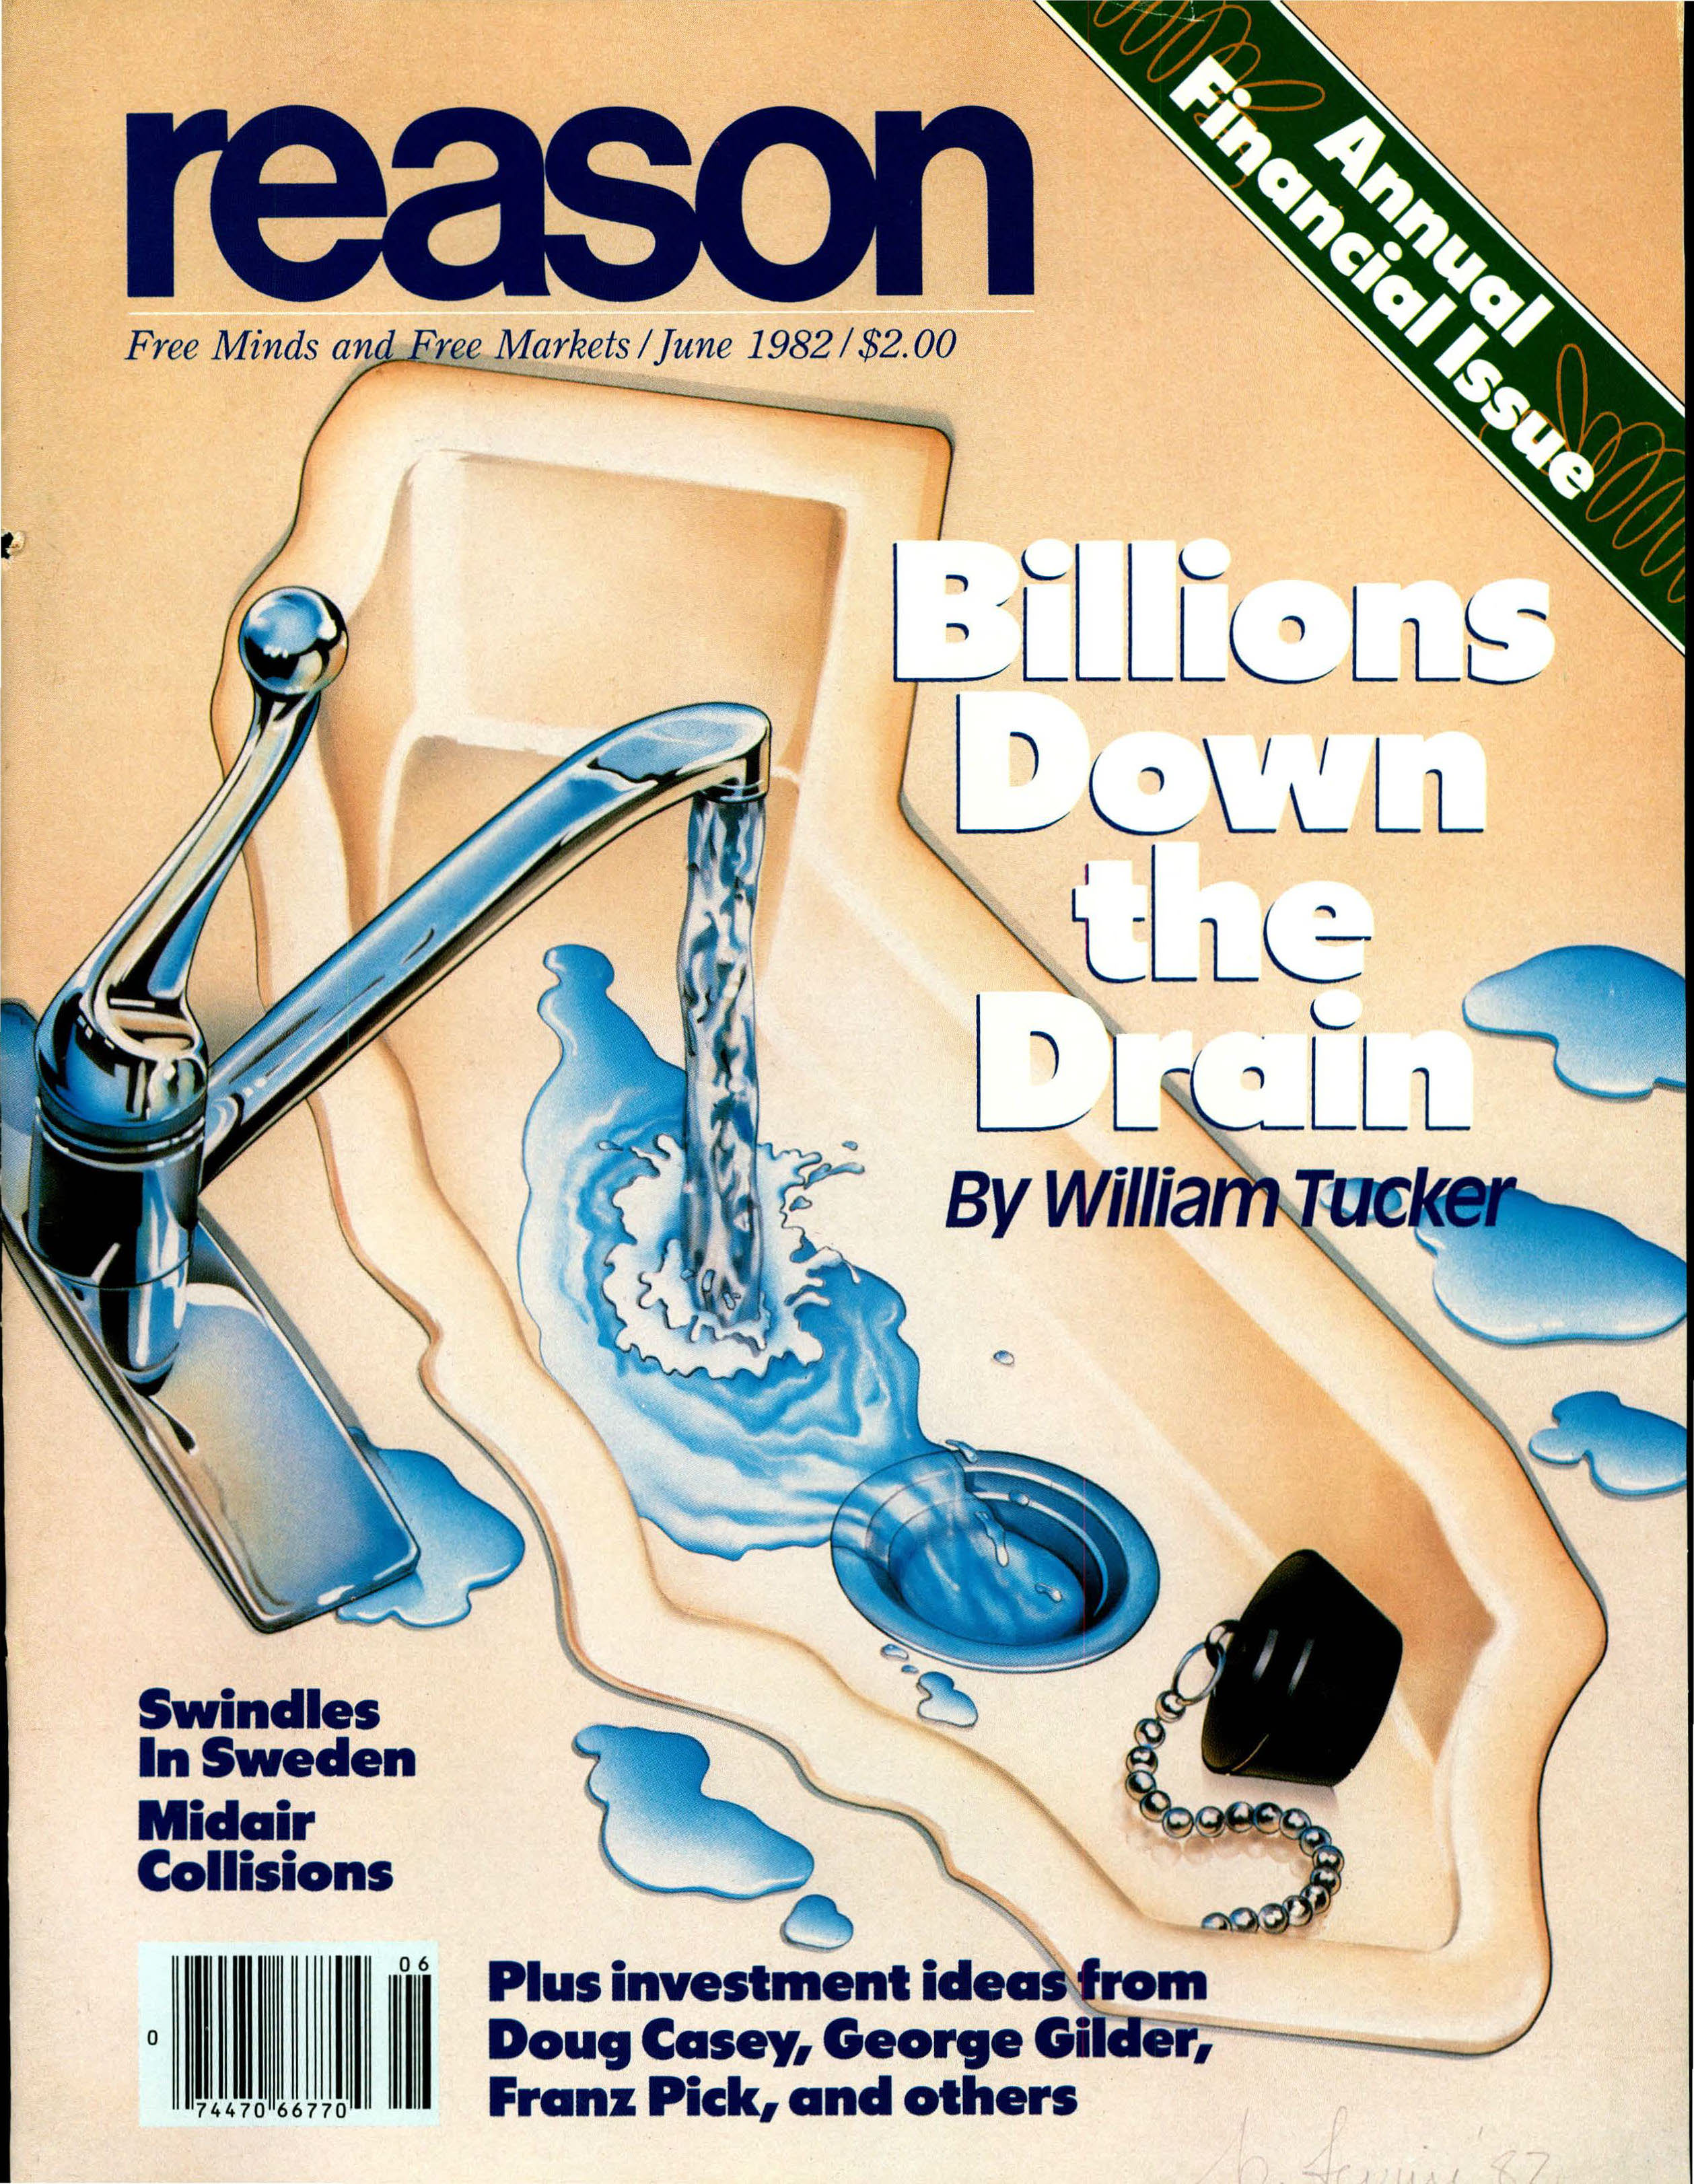 Reason Magazine, June 1982 cover image